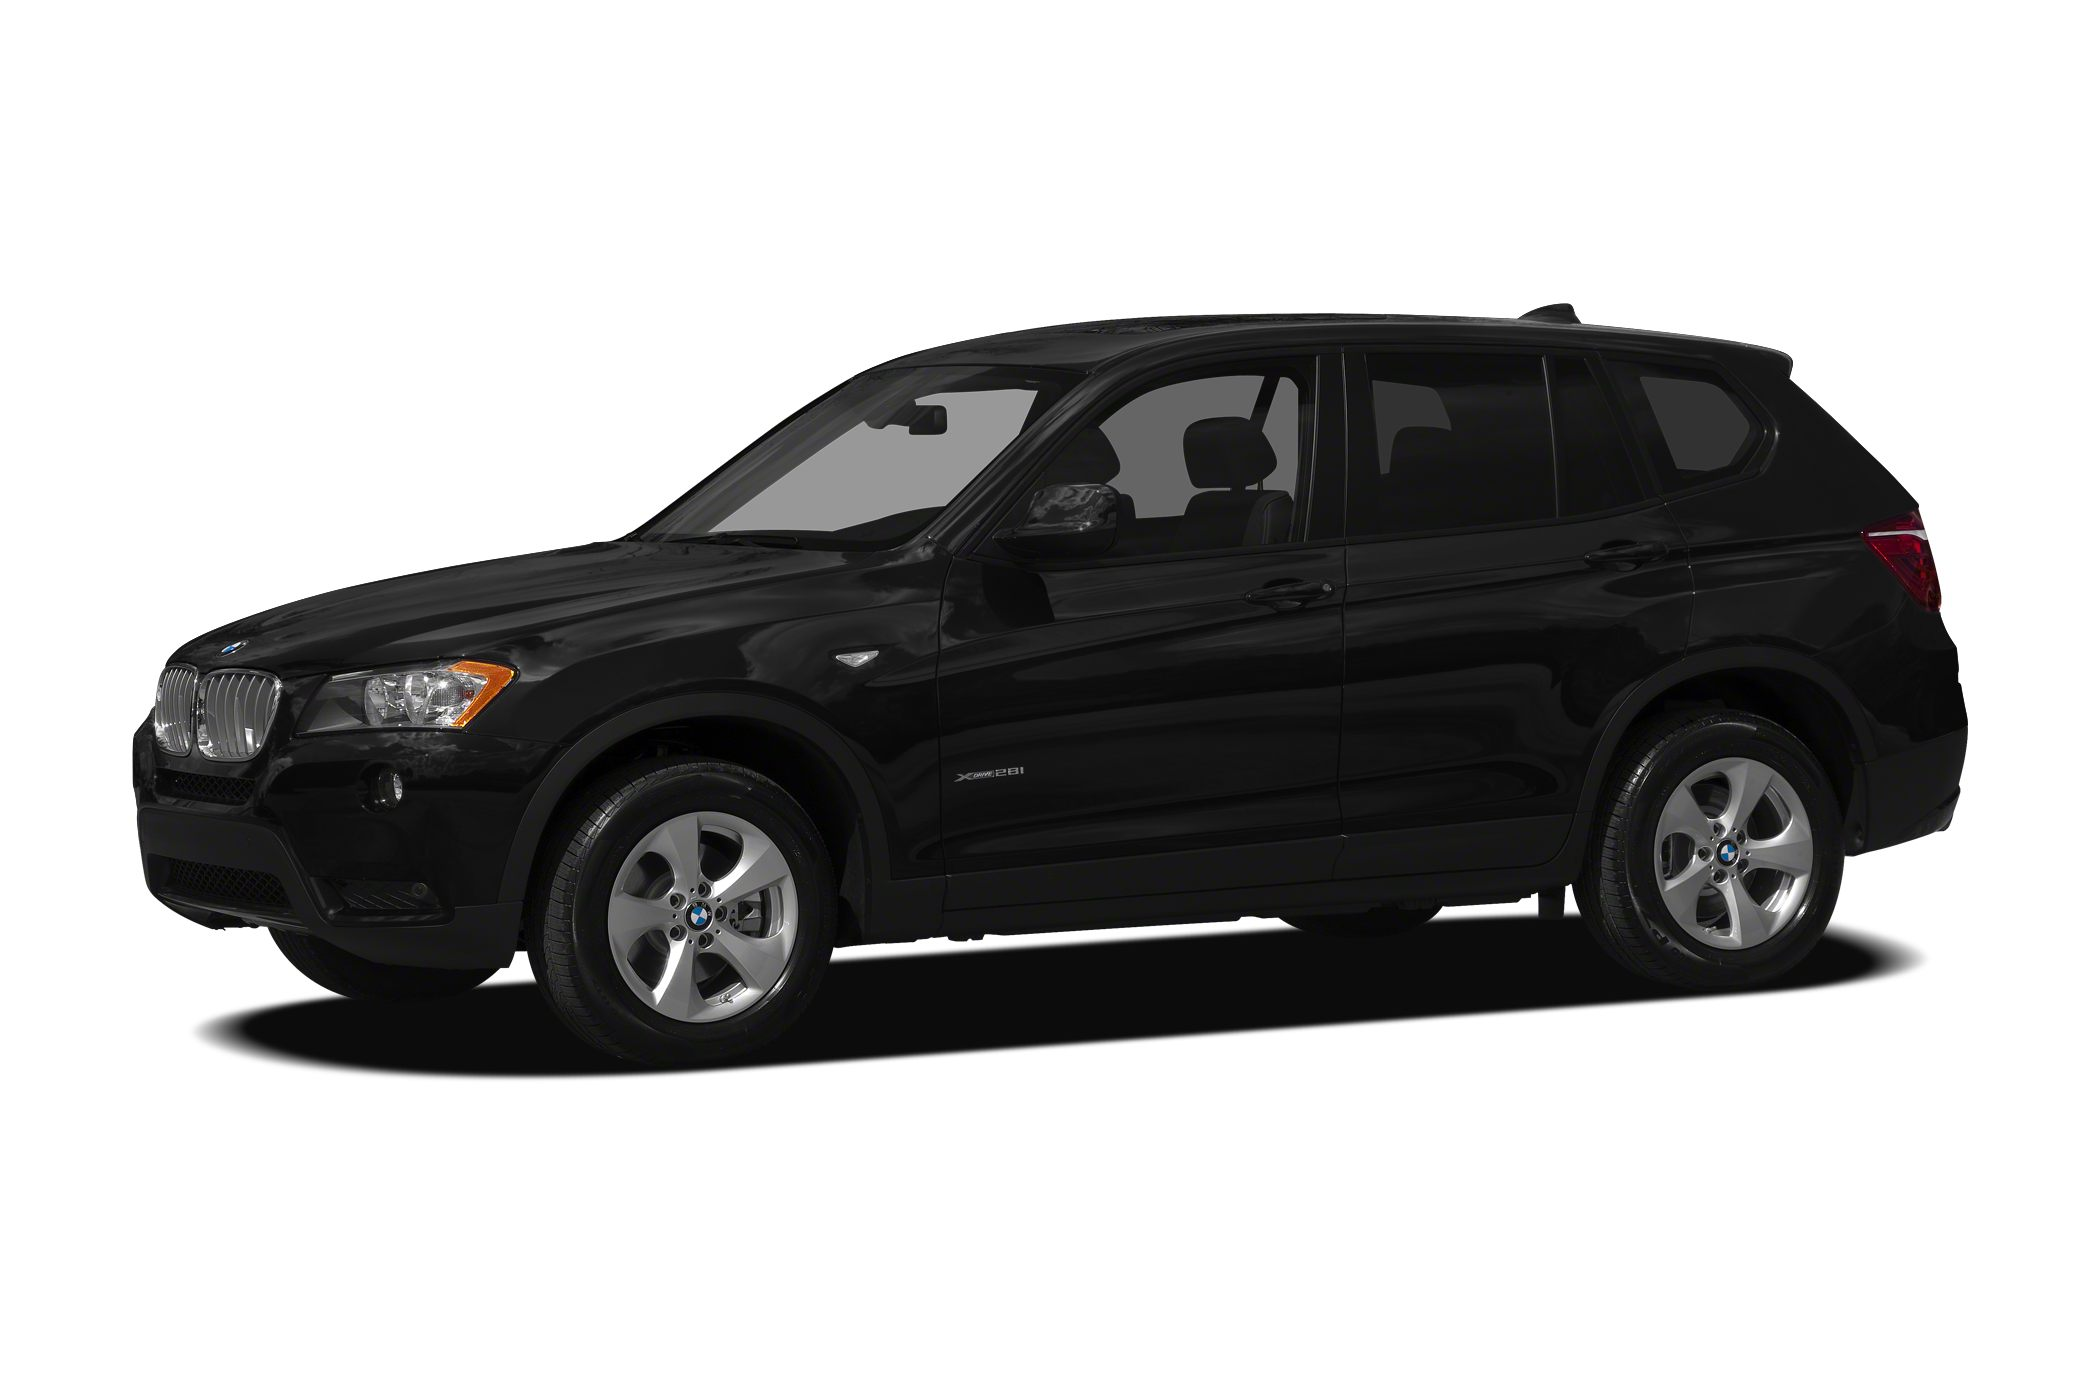 2011 BMW X3 XDrive28i SUV for sale in Spartanburg for $28,995 with 45,676 miles.